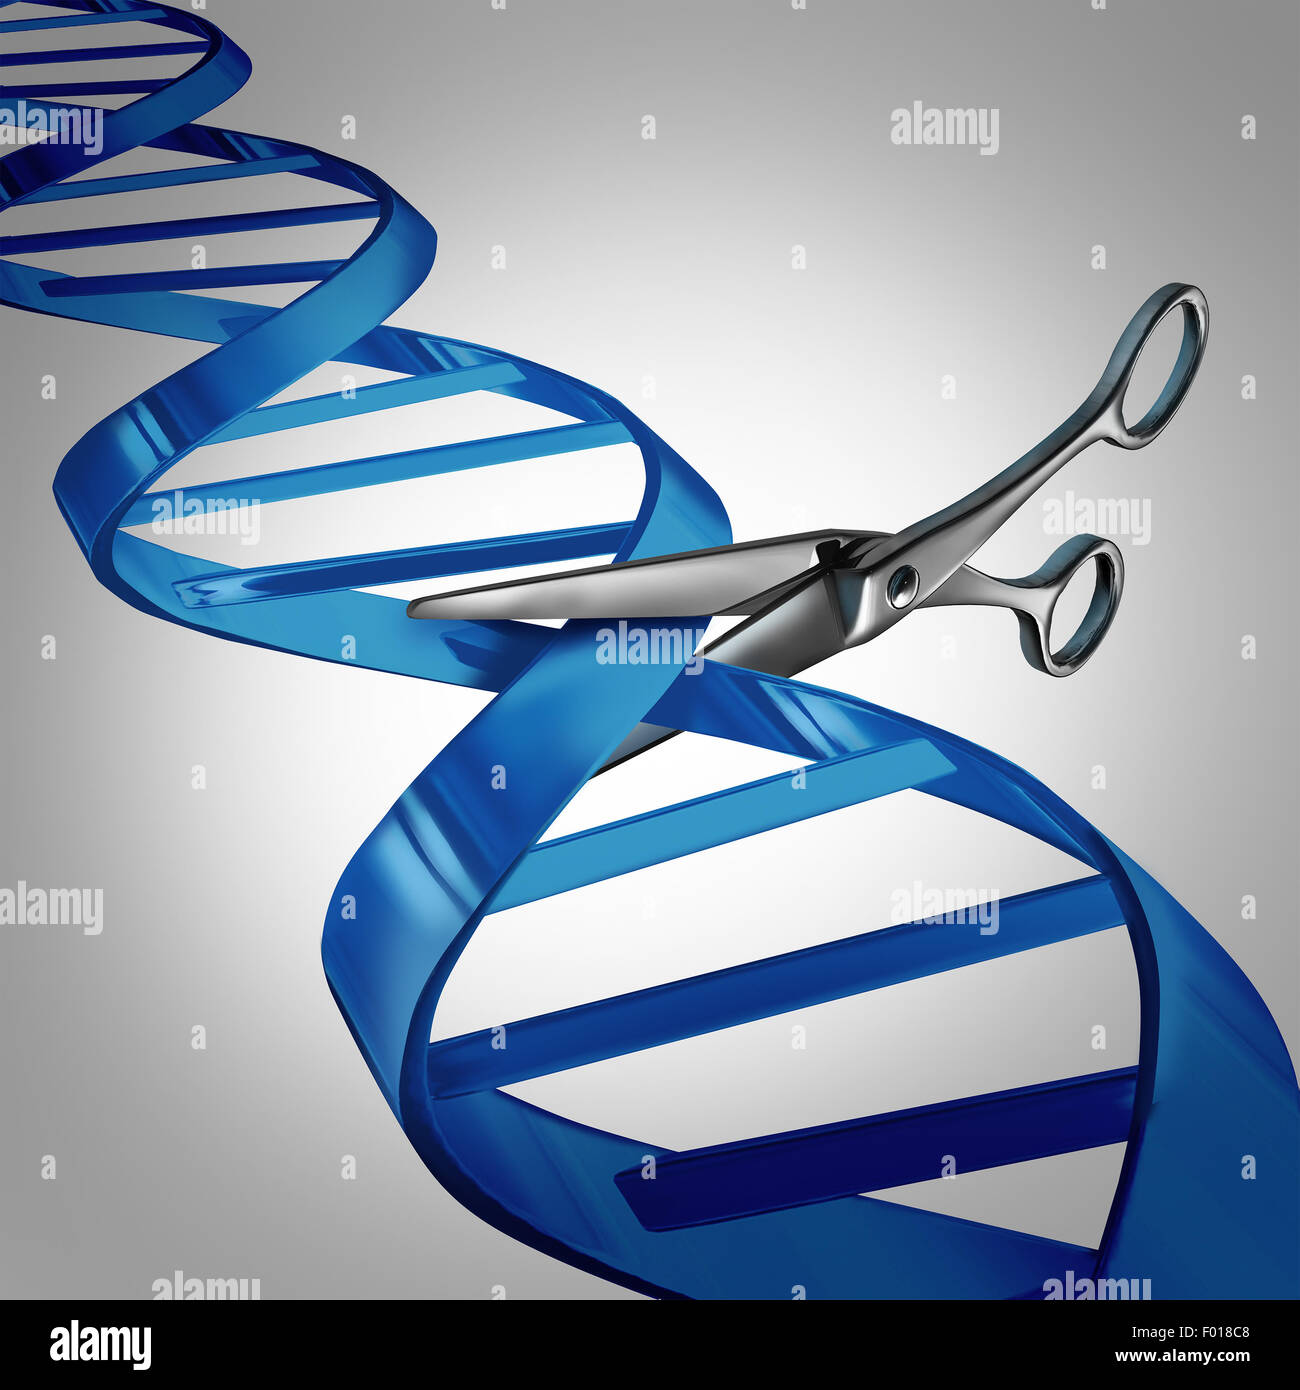 Gene editing health care concept as molecular scissors cutting a dna strand as a medical science and biology technology - Stock Image